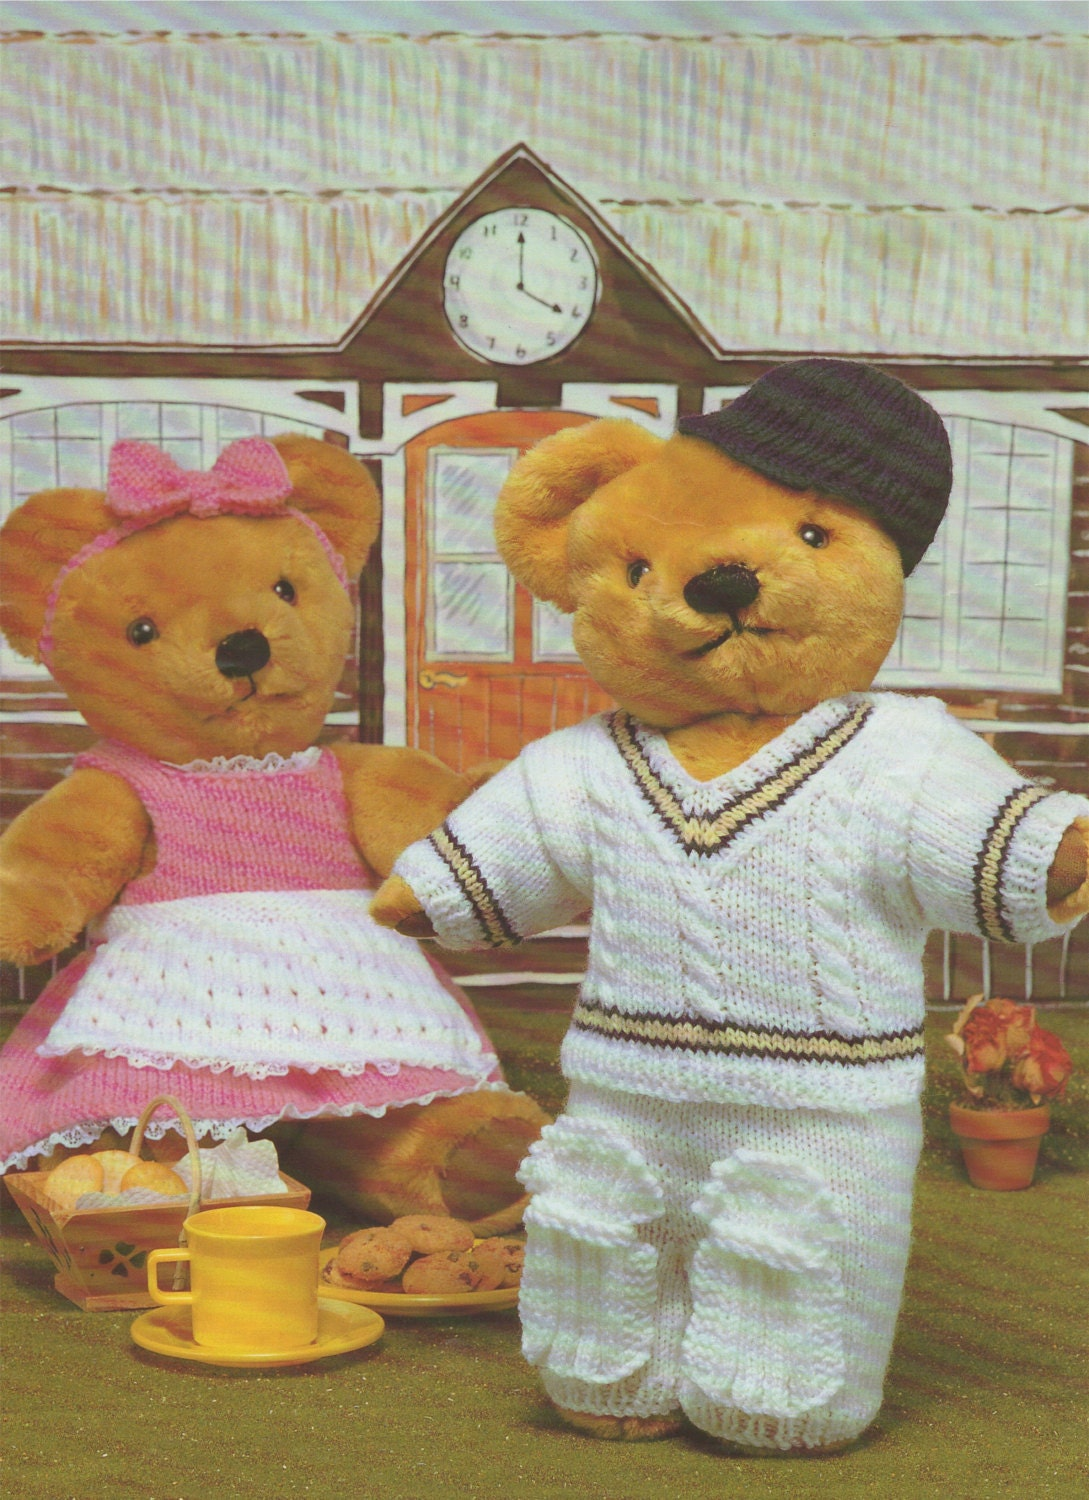 Teddy bear clothes pdf knitting pattern cricket outfit for boy teddy bear clothes pdf knitting pattern cricket outfit for boy ted bear and dress with apron for girl bear instant digital download bankloansurffo Gallery